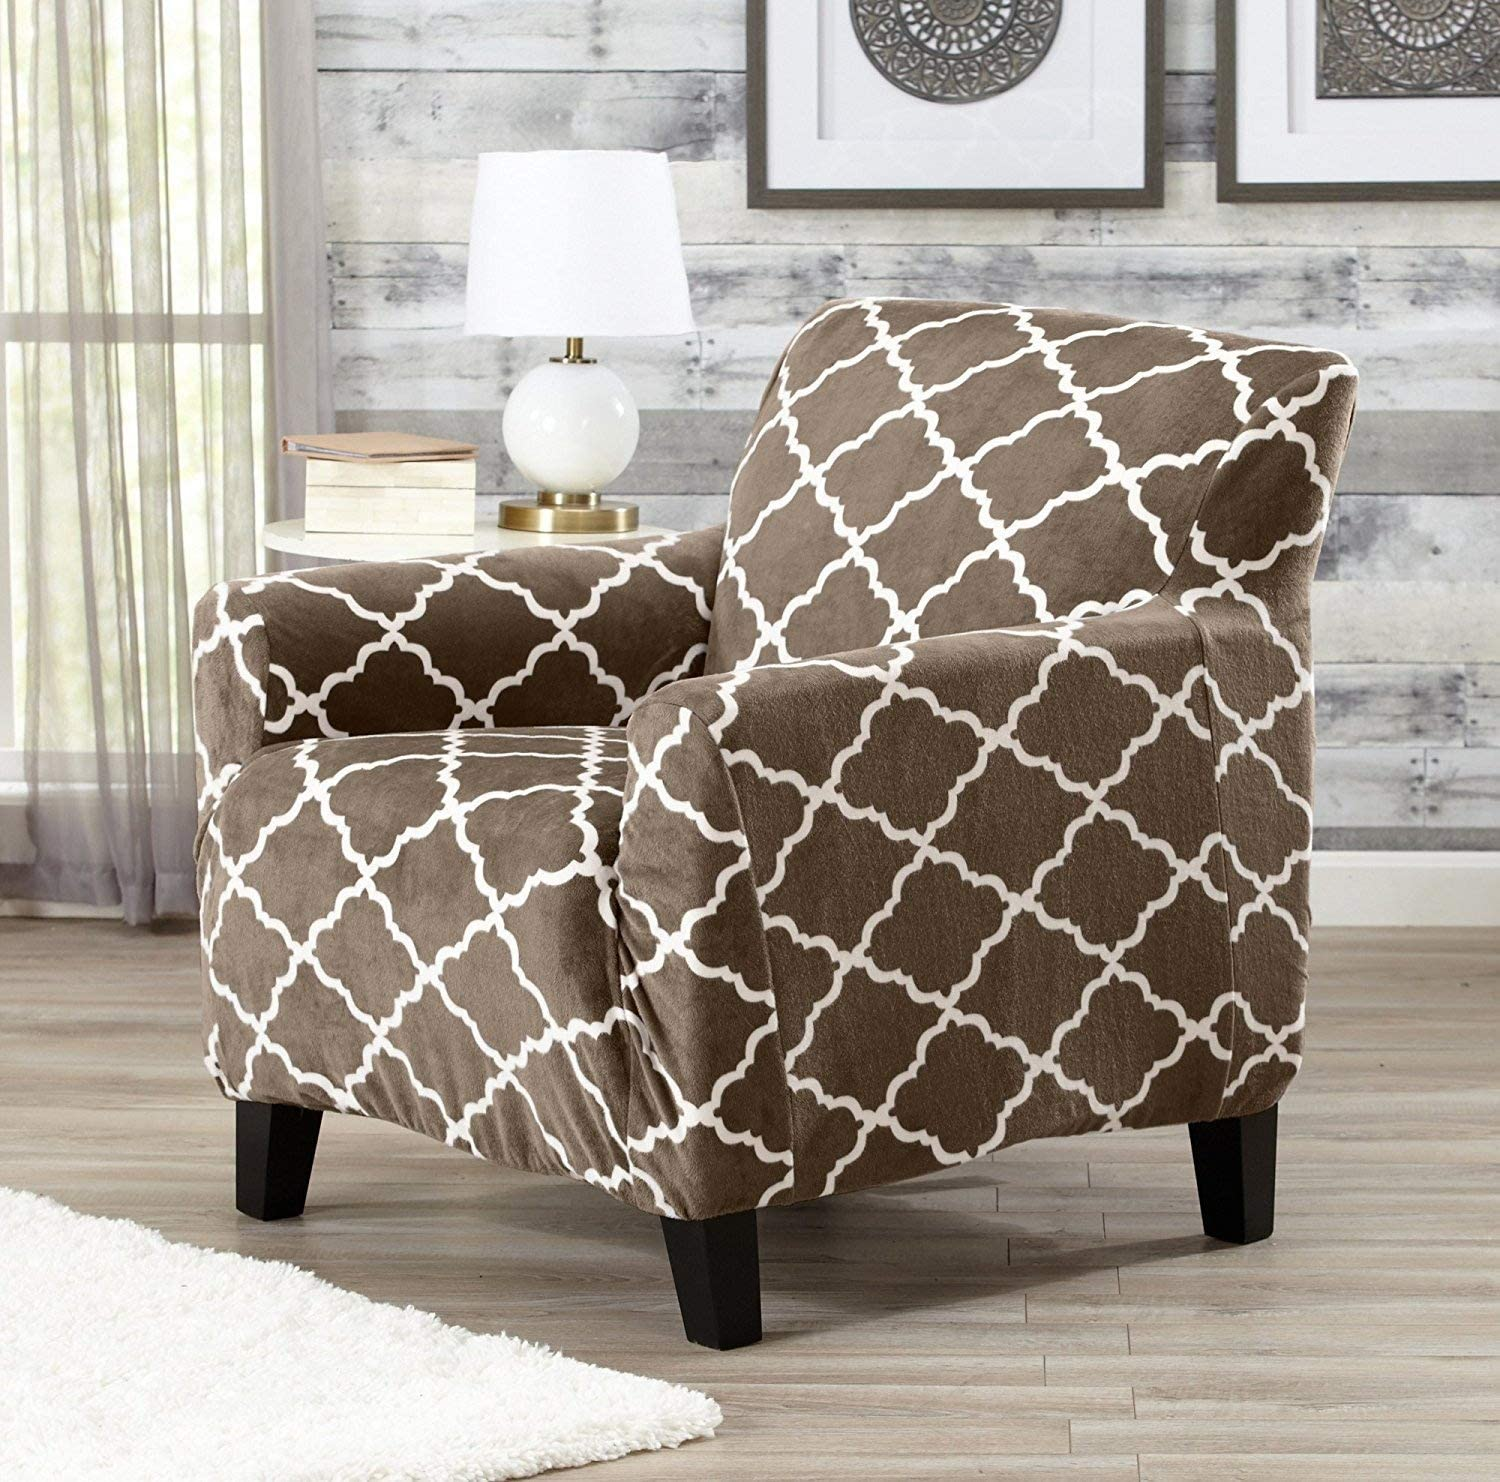 Great Bay Home Modern Velvet Plush Arm Chair Slipcover. Strapless One Piece Stretch Chair Cover. Arm Chair Cover for Living Room. Magnolia Collection Slipcover. (Chair, Walnut Brown)